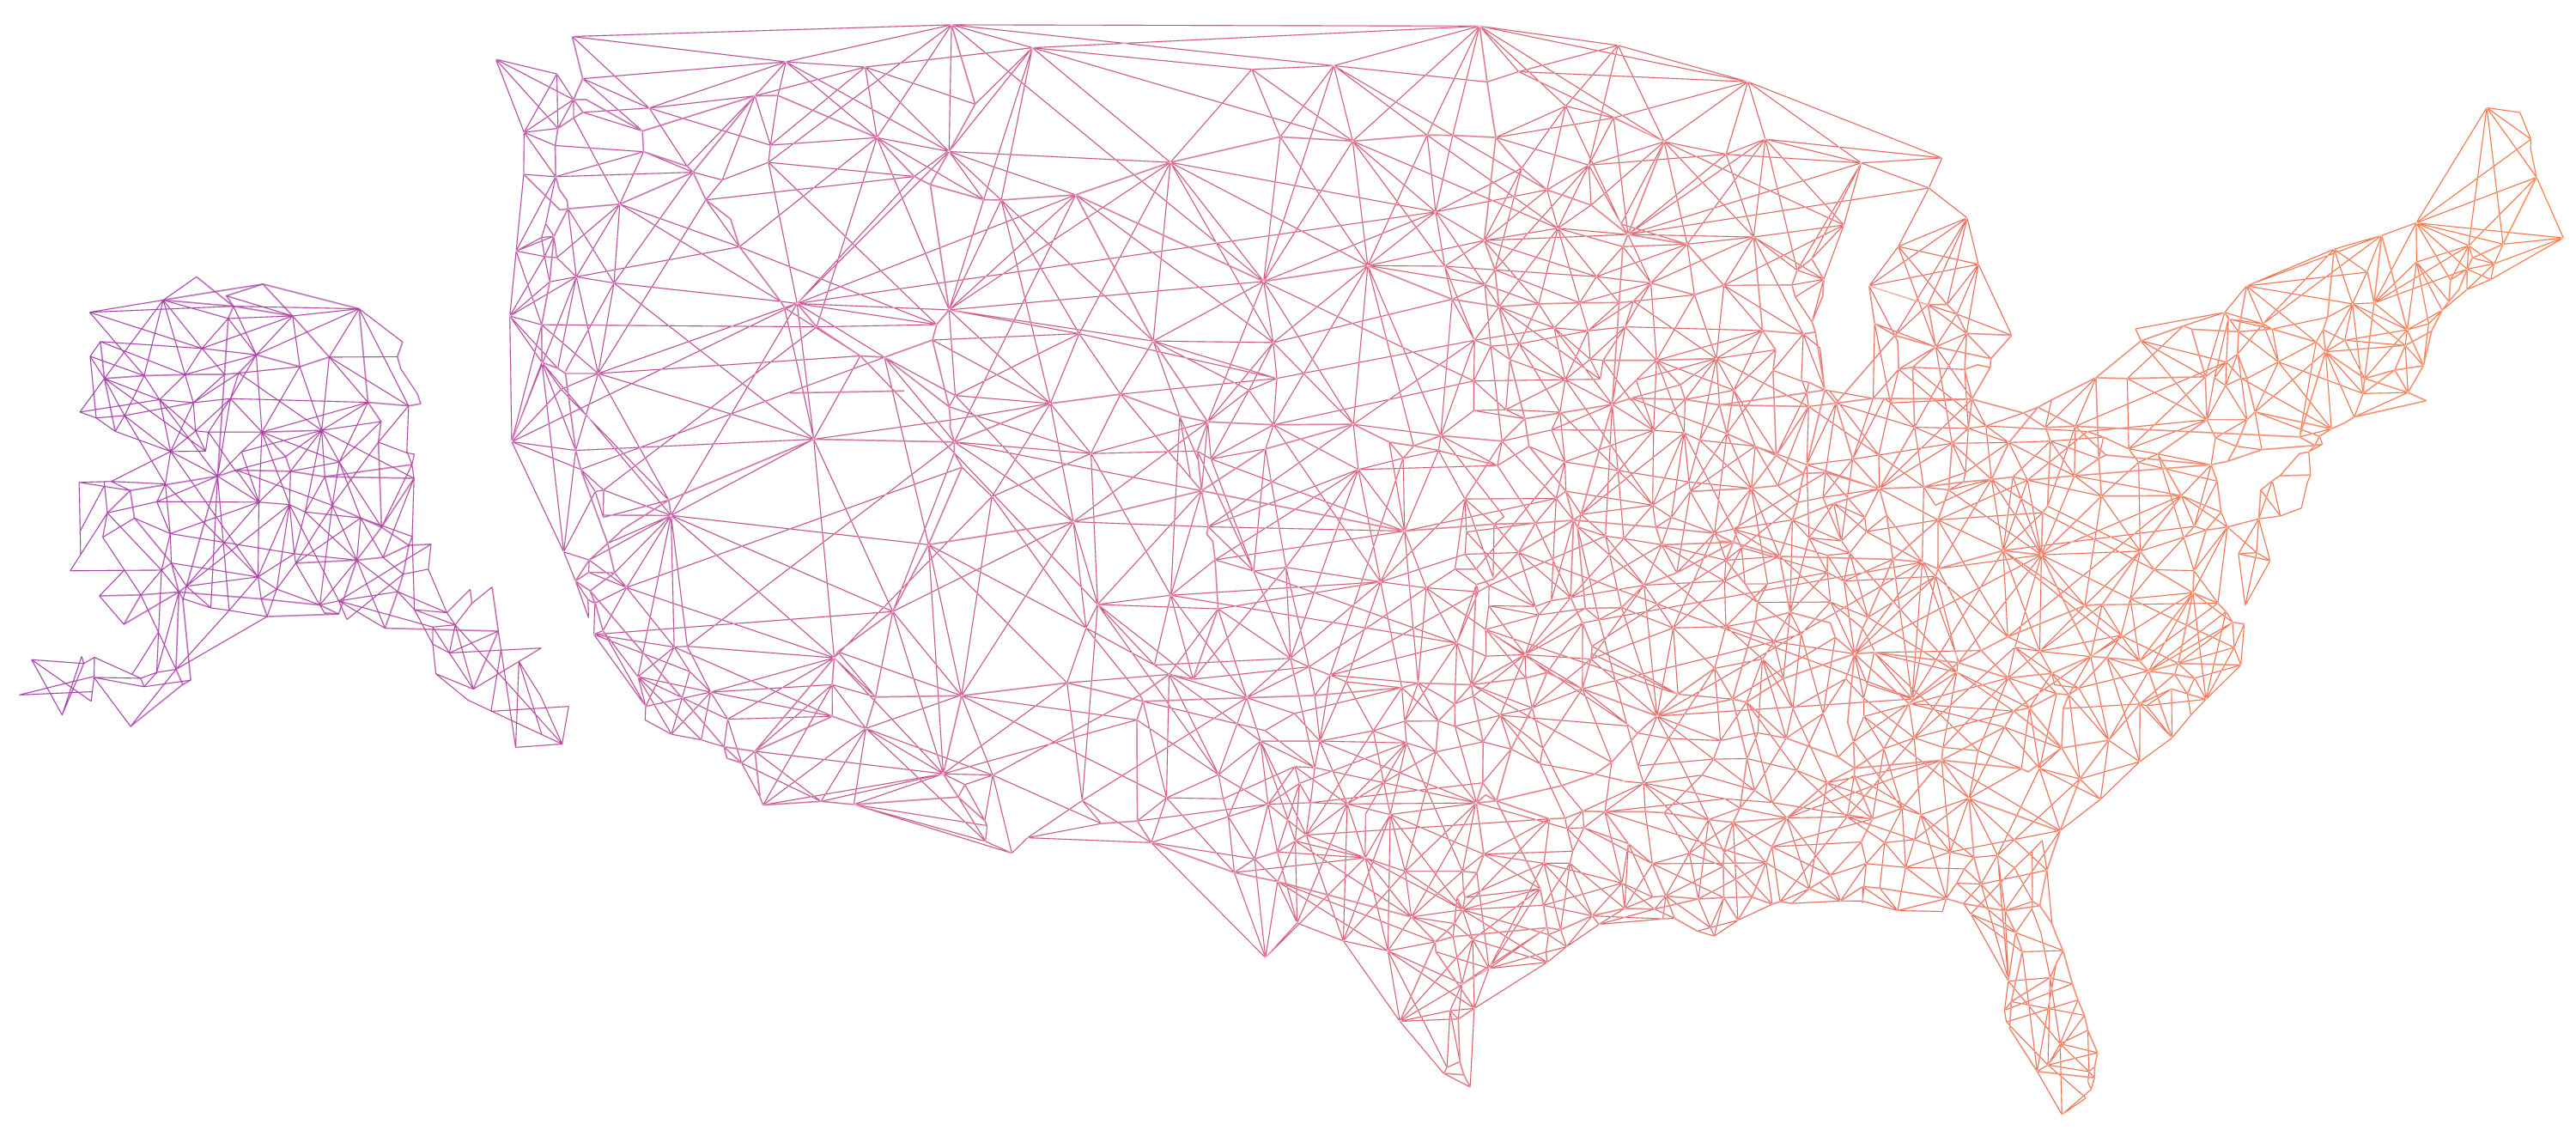 Map of the United States